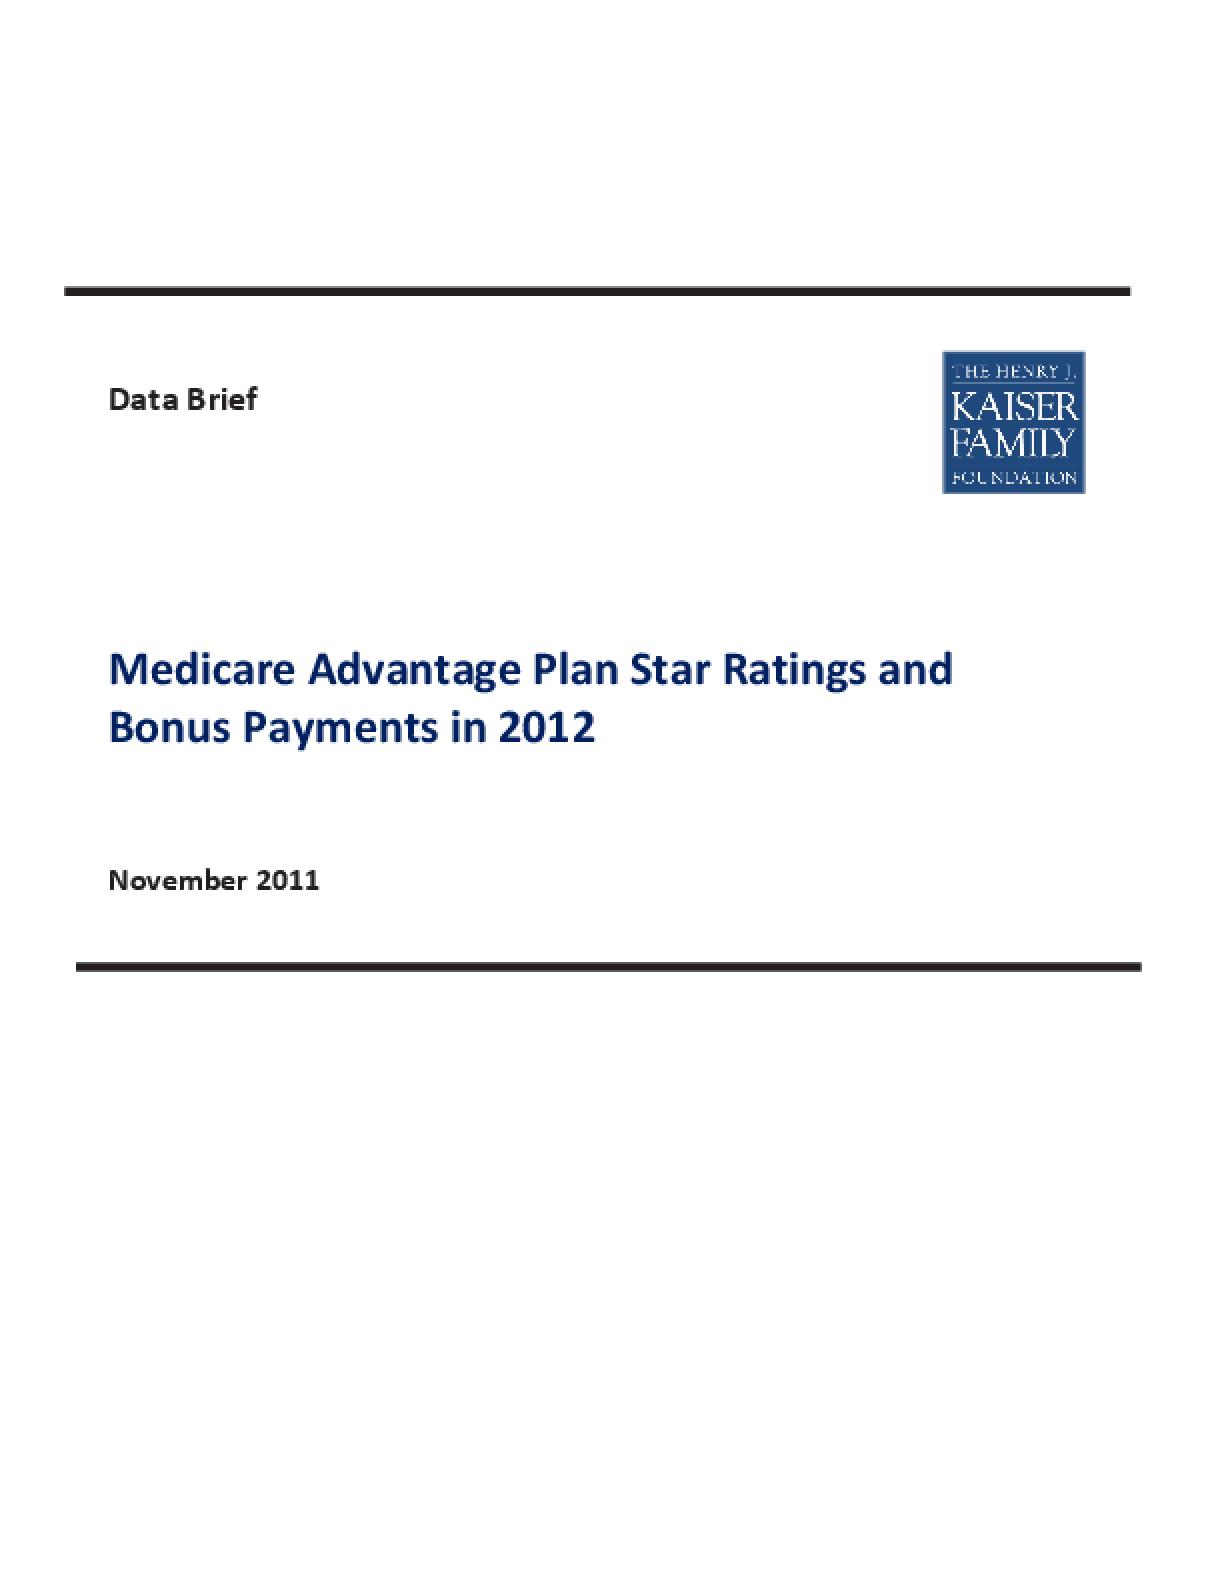 Medicare Advantage Plan Star Ratings and Bonus Payments in 2012